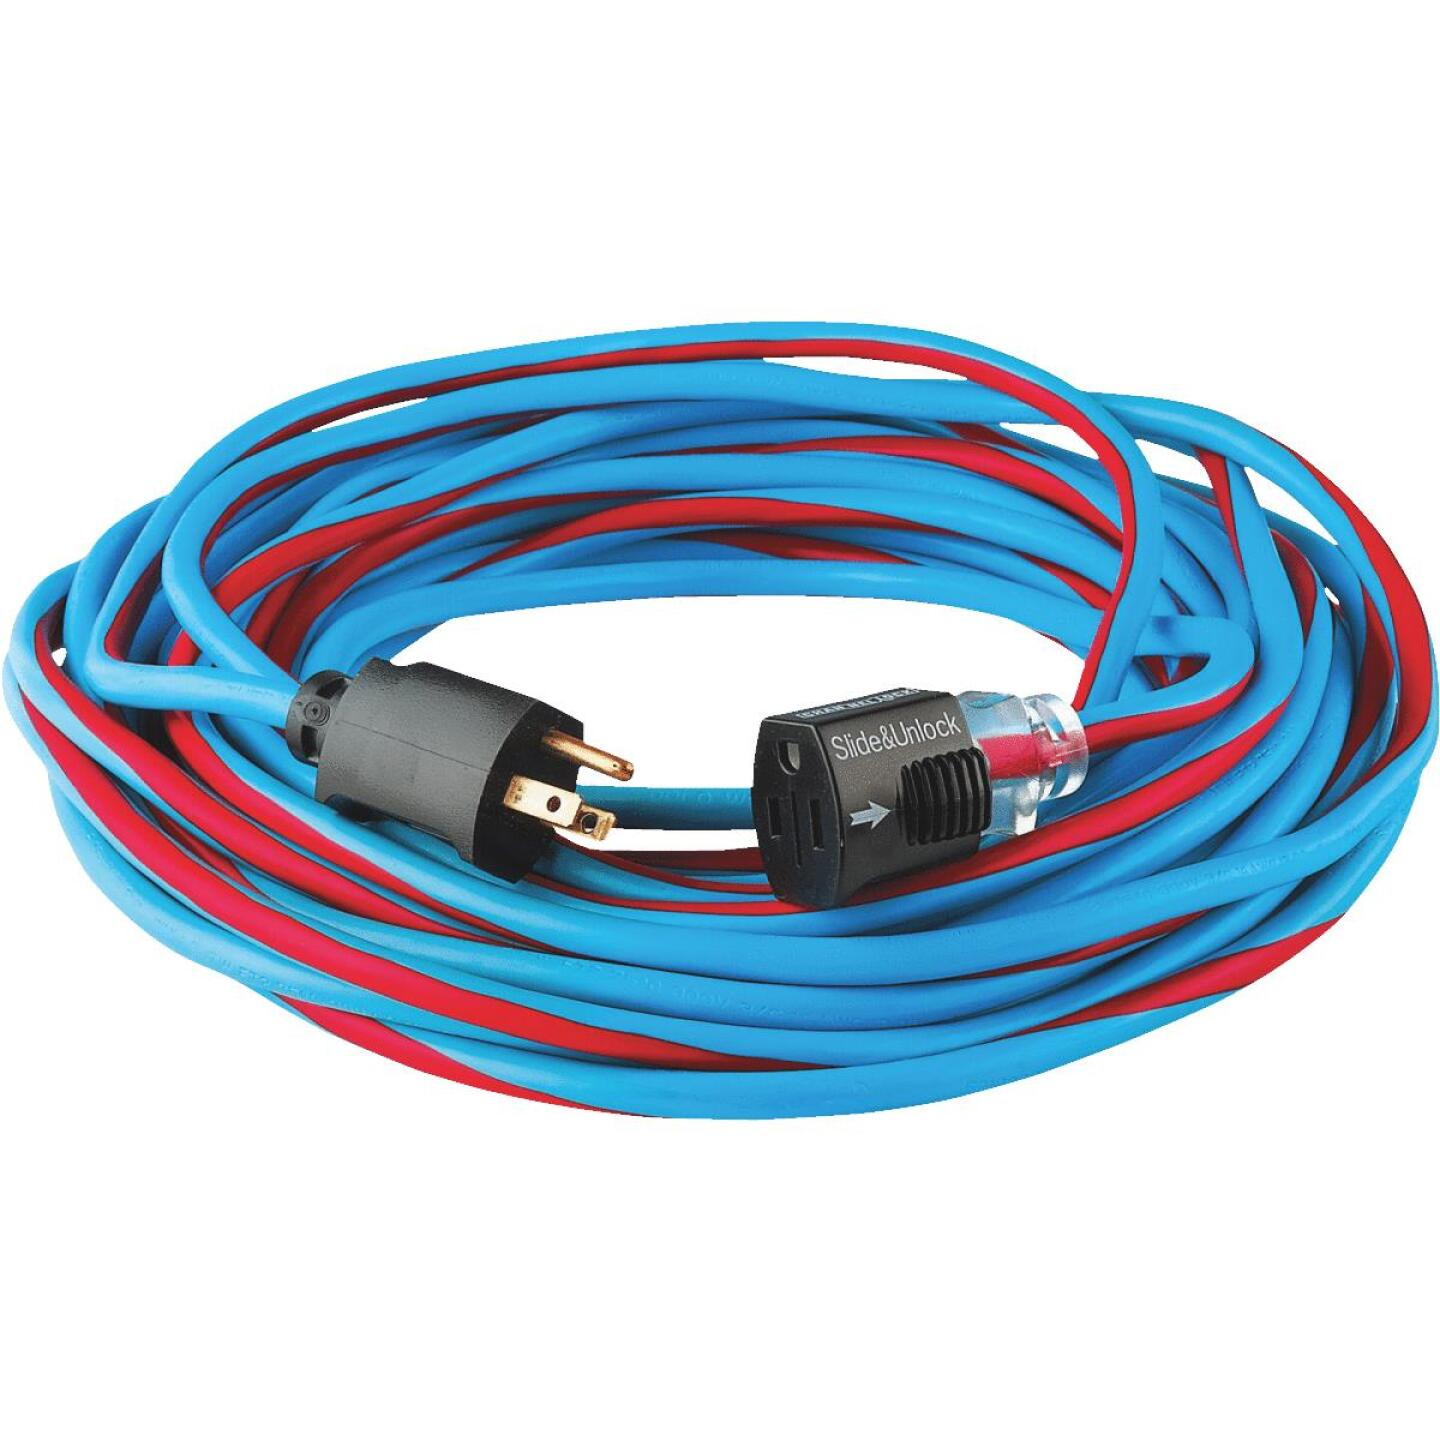 Channellock 50 Ft. 14/3 Extension Cord Image 1